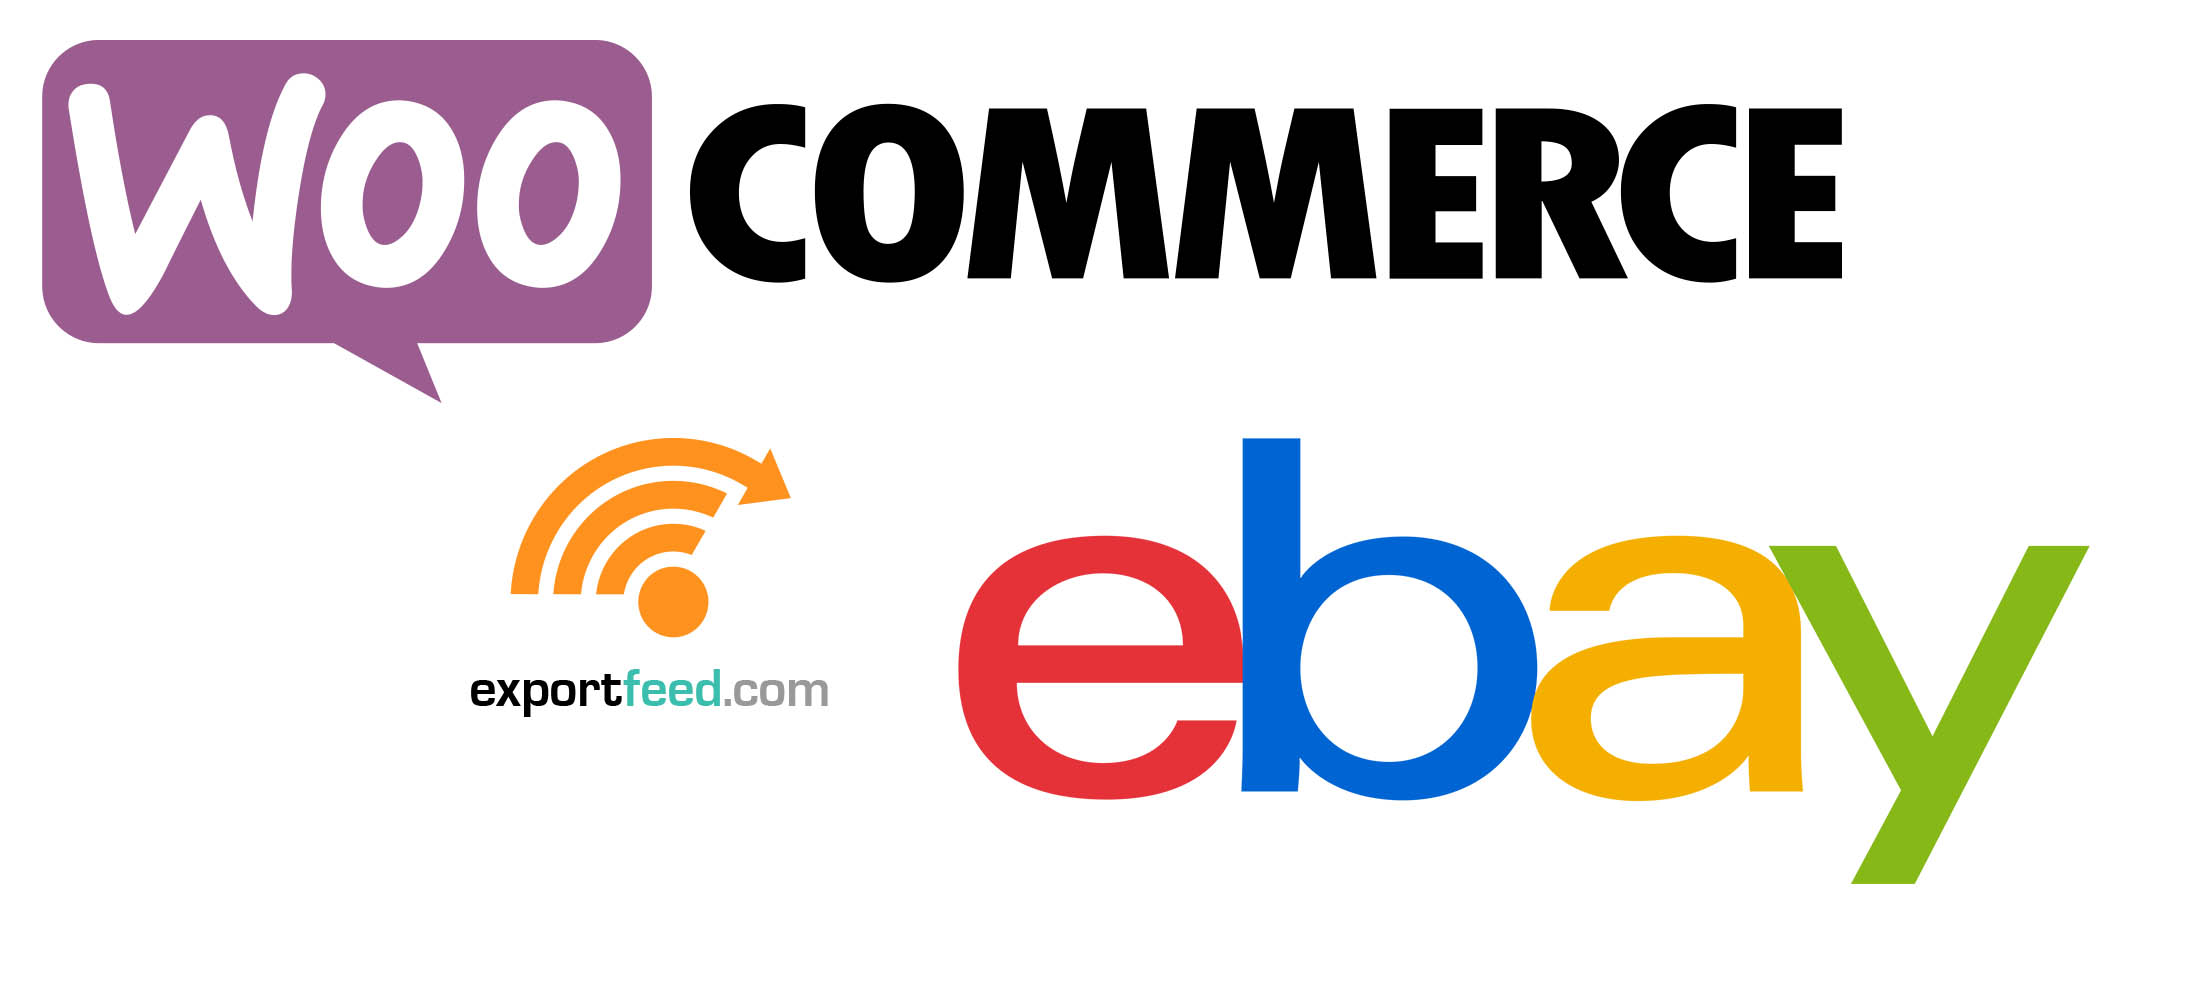 woocommerce feed export to ebay